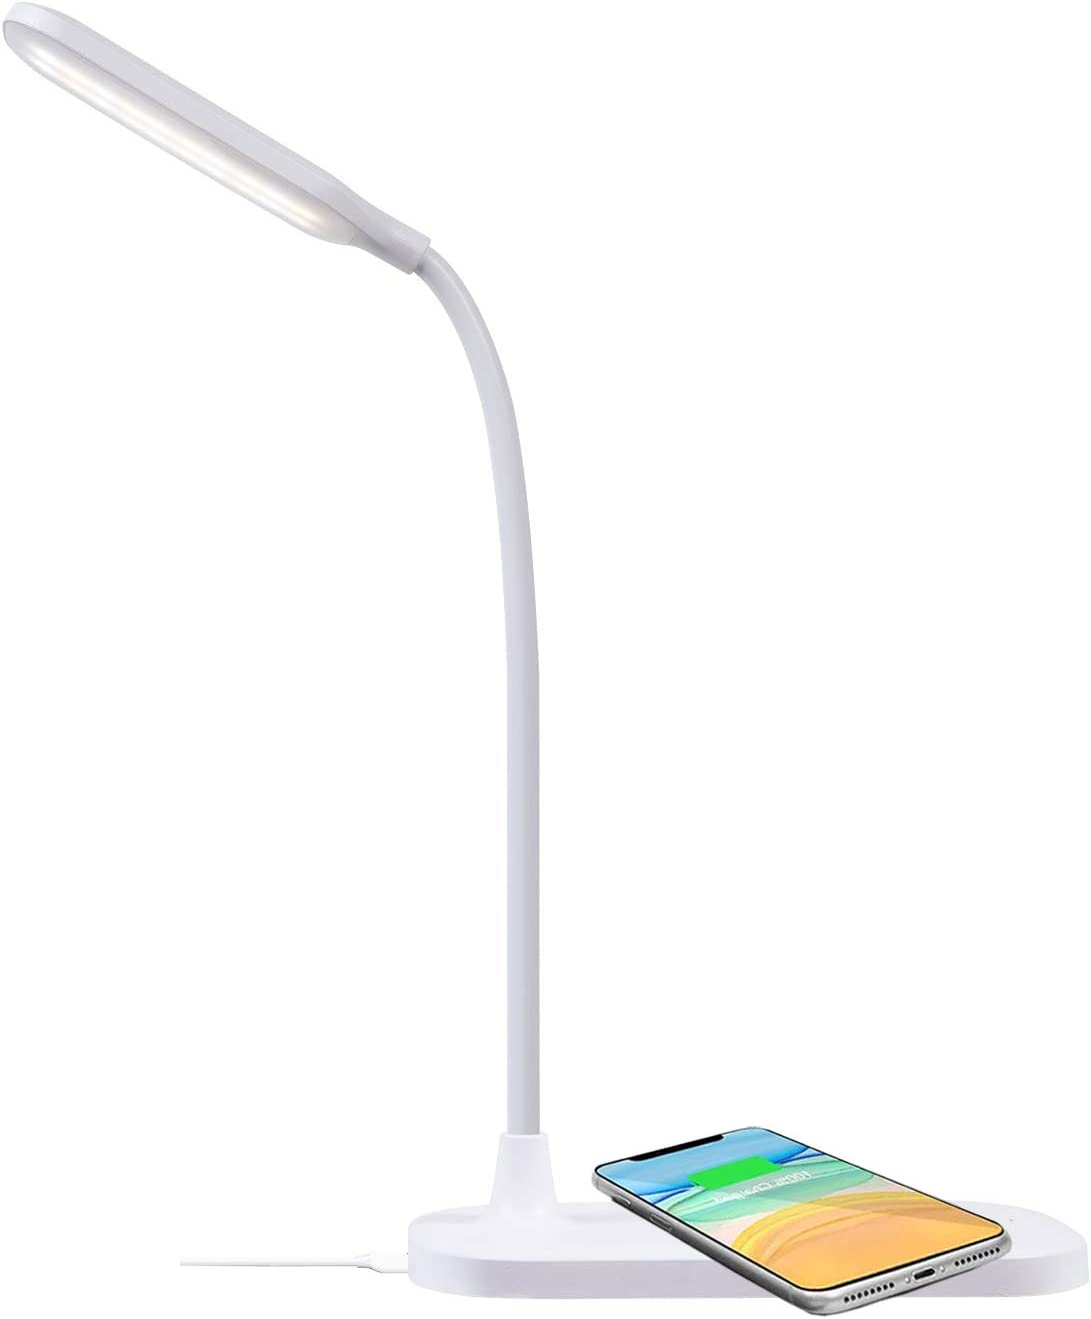 LED Desk Lamp with Wireless Charger, Eye-Caring Desk Light with USB Charging Port, 3 Lighting Modes, Touch Control Dimmable Table Lamp for Office, Study, Dormitory, Small White Desk Lamp